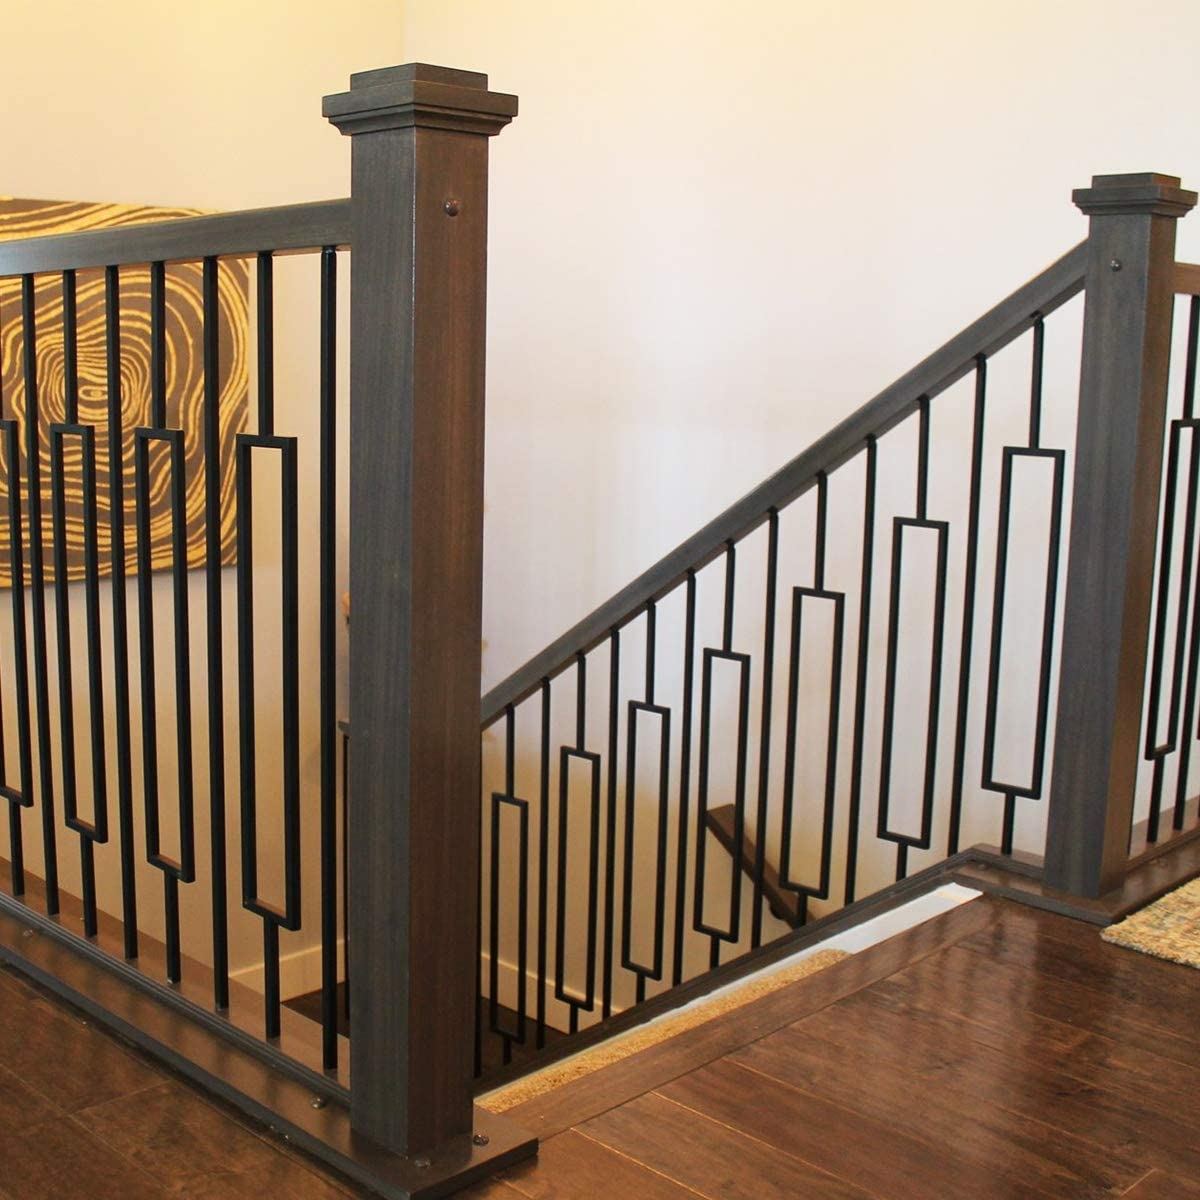 Contemporary Rectangle Stair Wrought Iron Balusters 10 Pack | Black Banister White Spindles | Black Railing | Wainscoting | White Painted Riser | Benjamin Moore Stair Railing | Baluster Curved Stylish Overview Stair